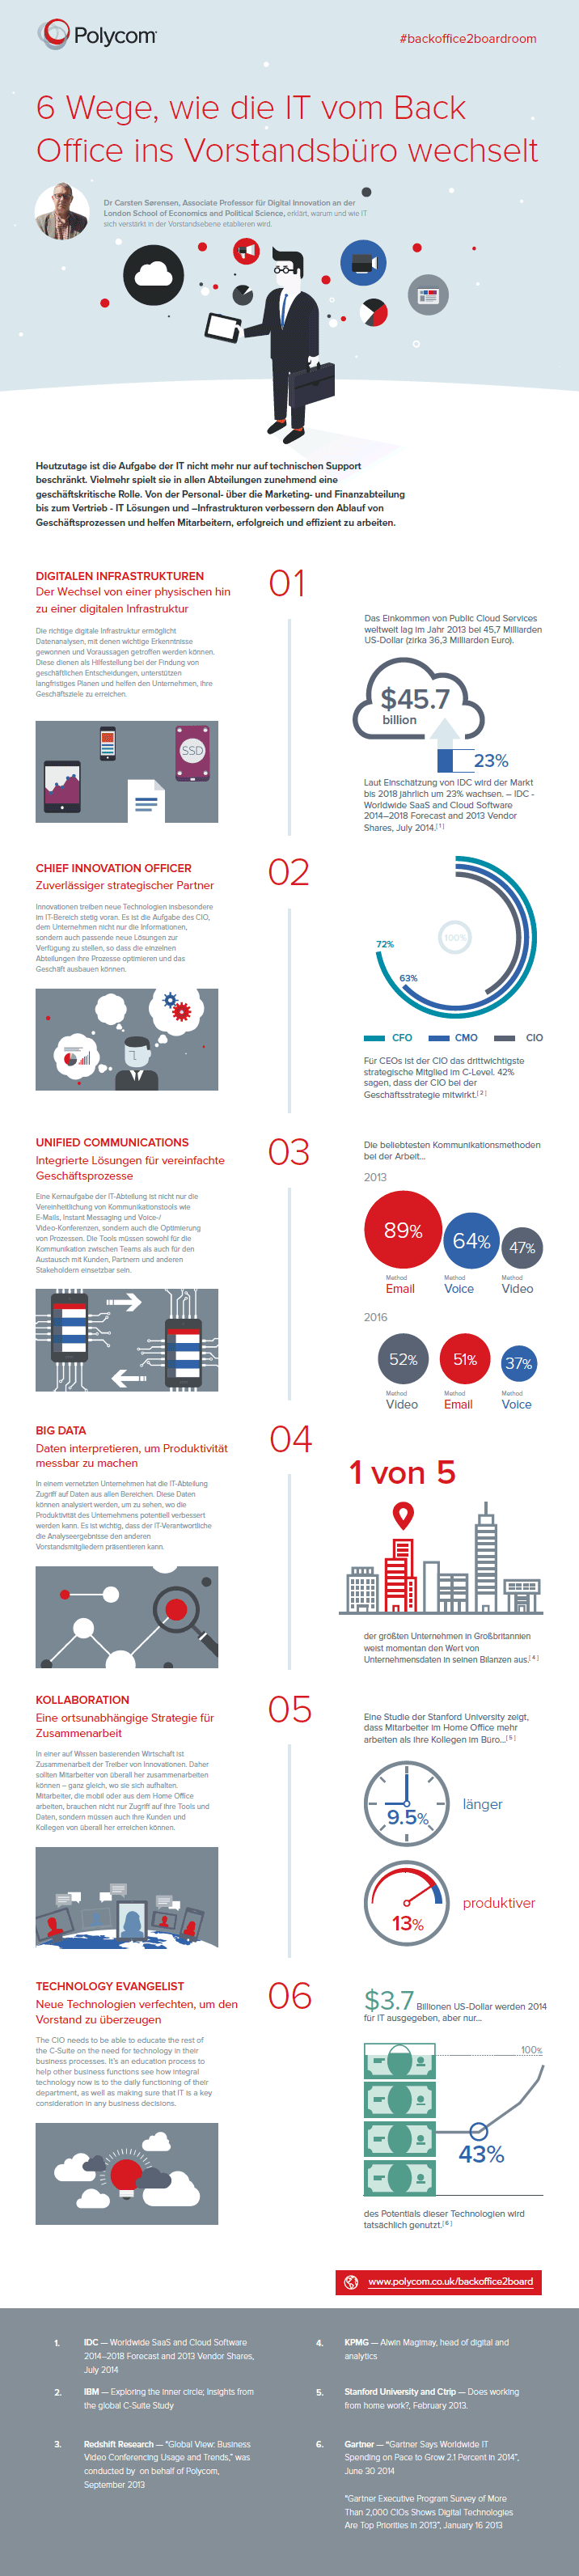 infografik IT vom back office in den Vorstand